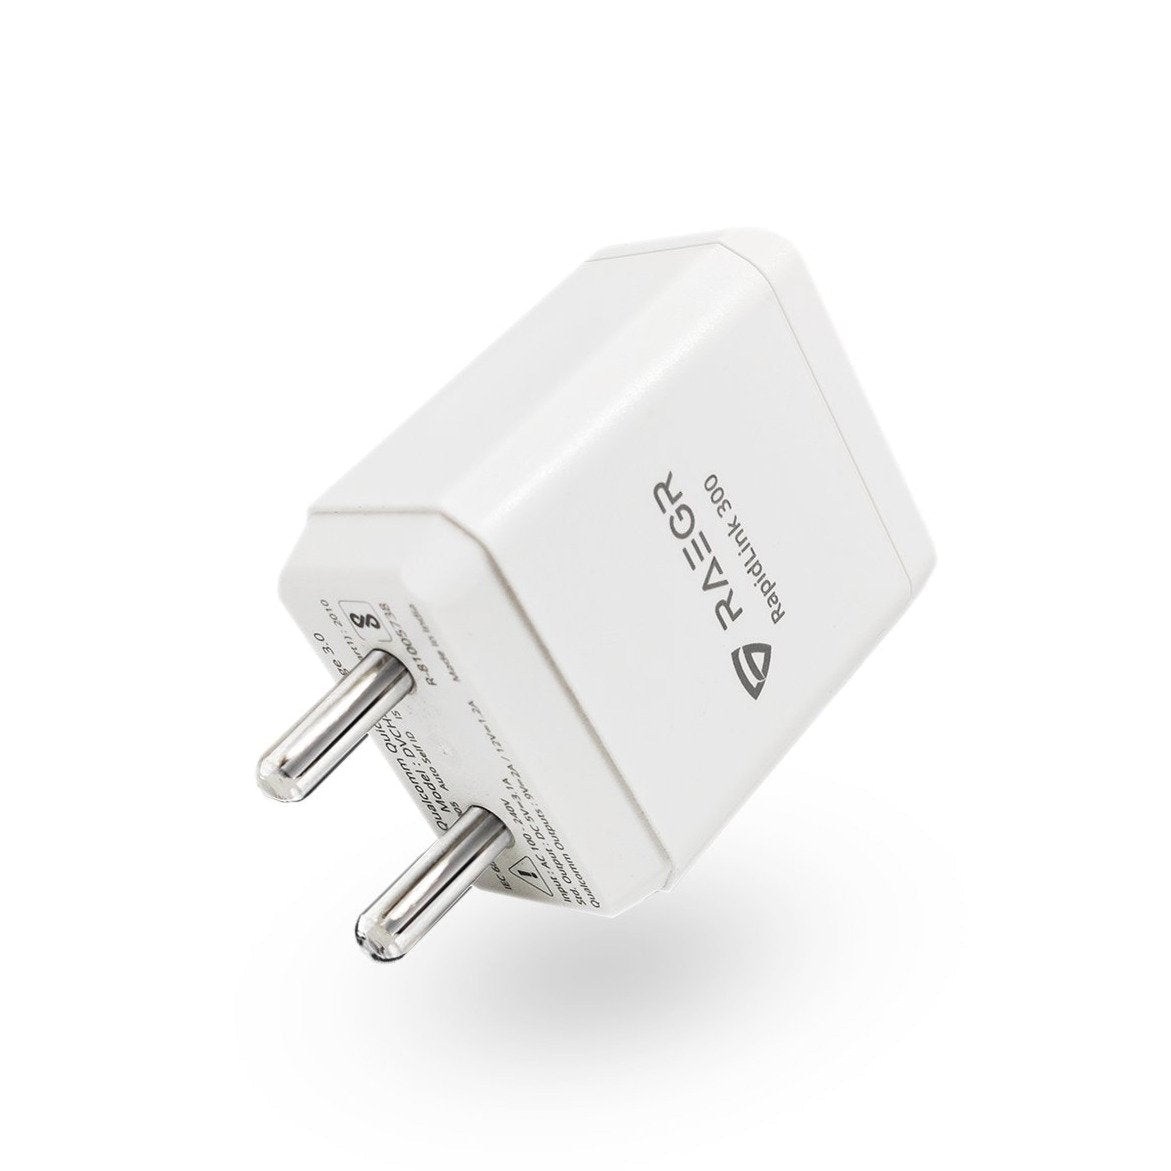 RAEGR RapidLink 300 Adapter